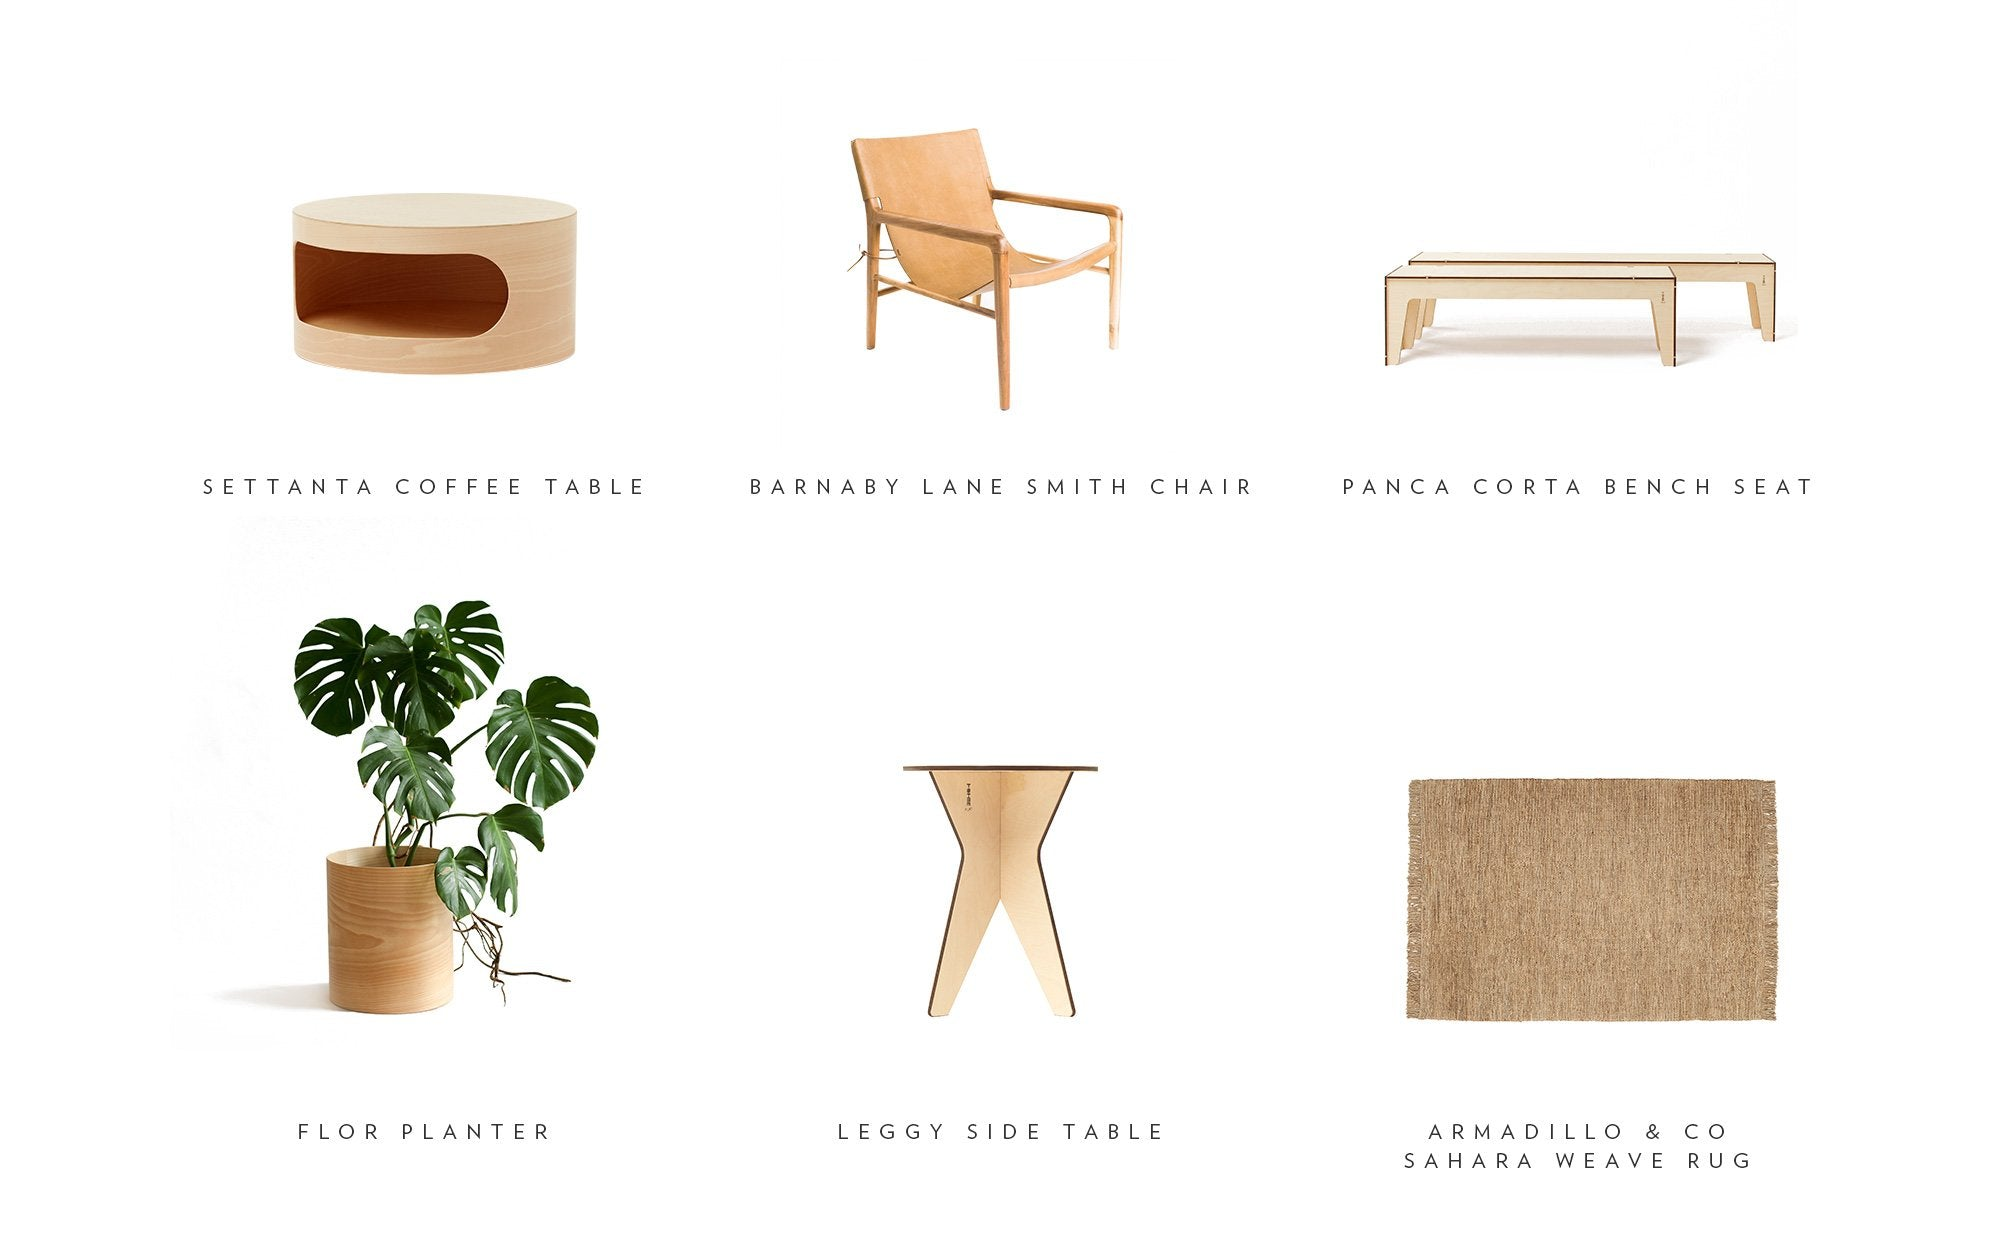 Inspired by Comma Byron Bay with the Plyroom Flor Planter and Settanta Coffee Table